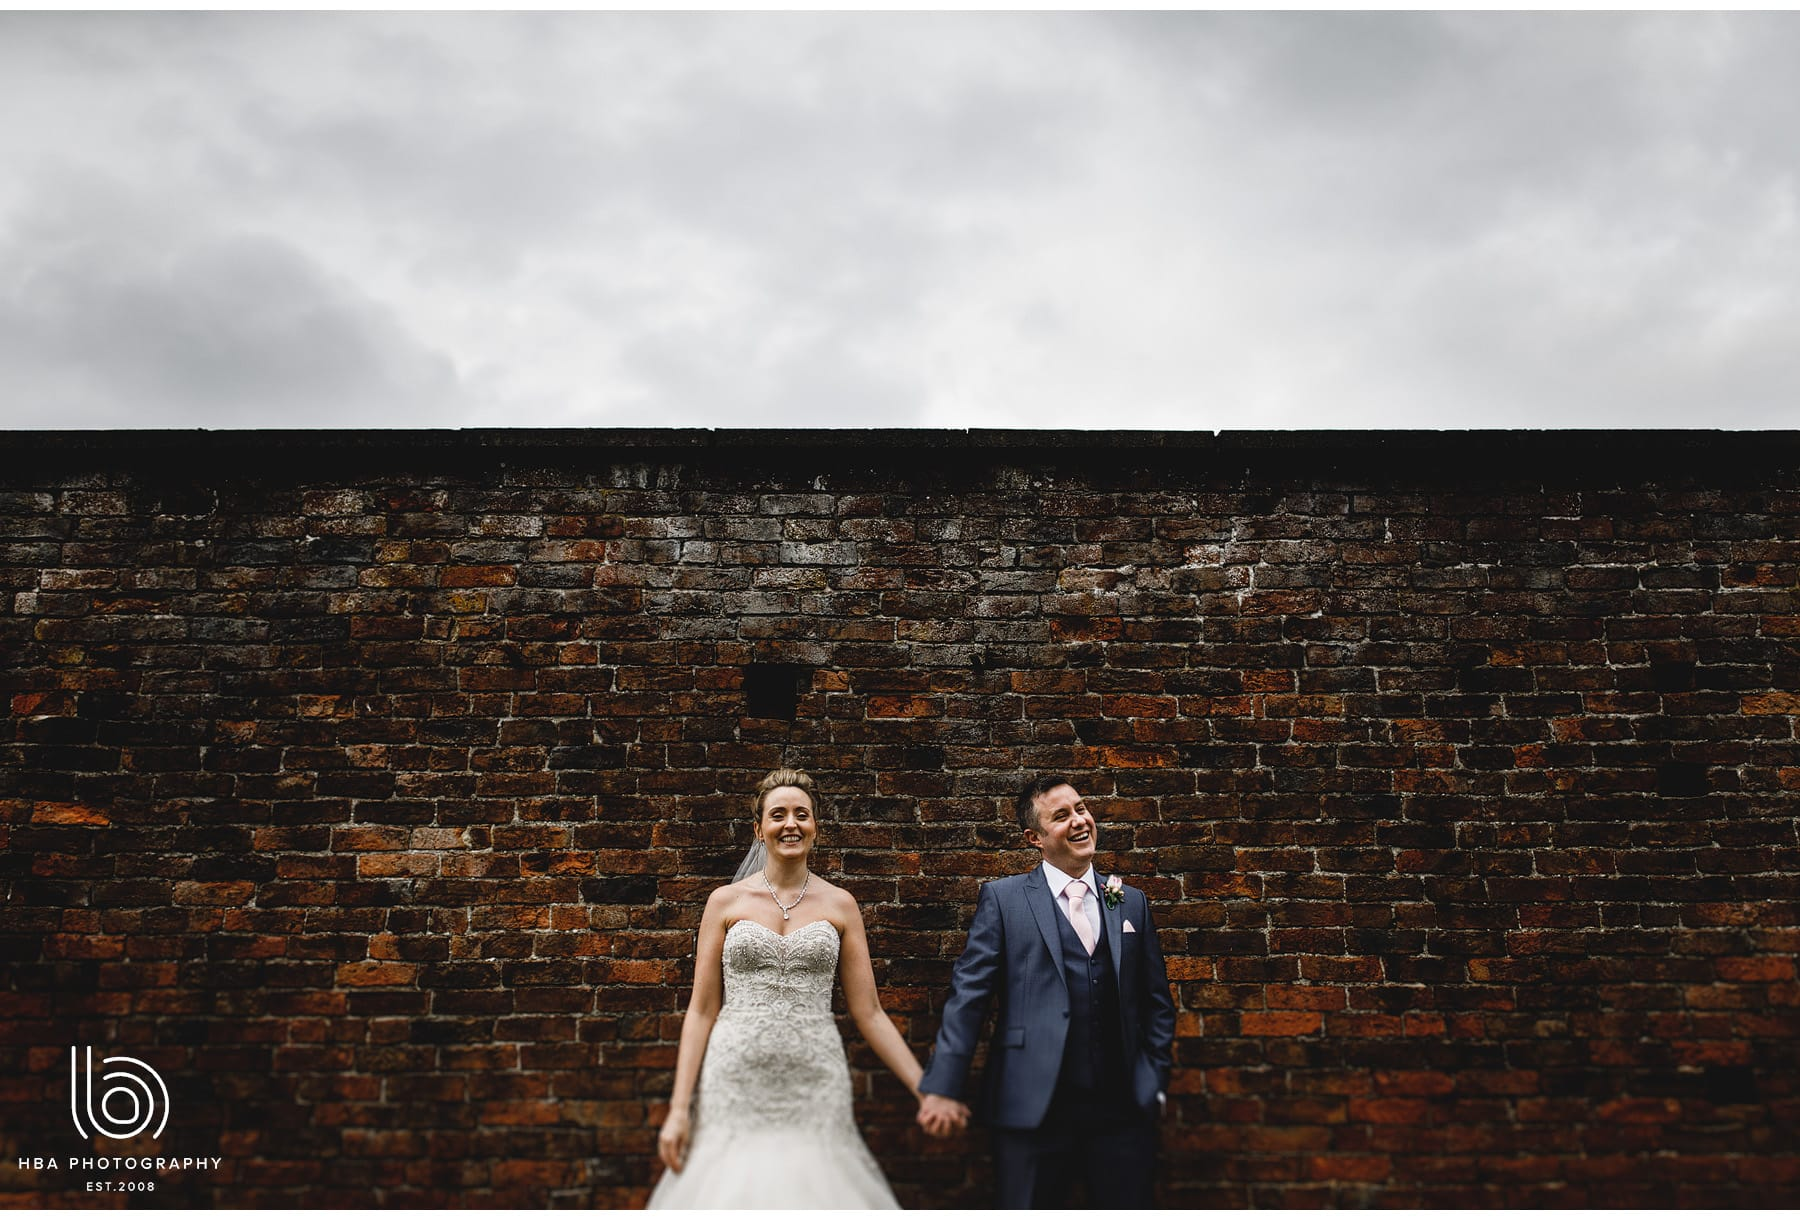 the bride & groom against the walls